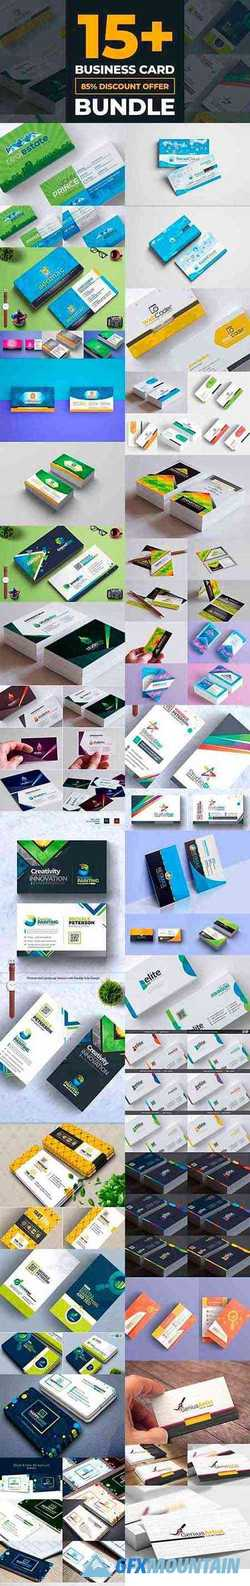 Business Card Template Bundle 3605436